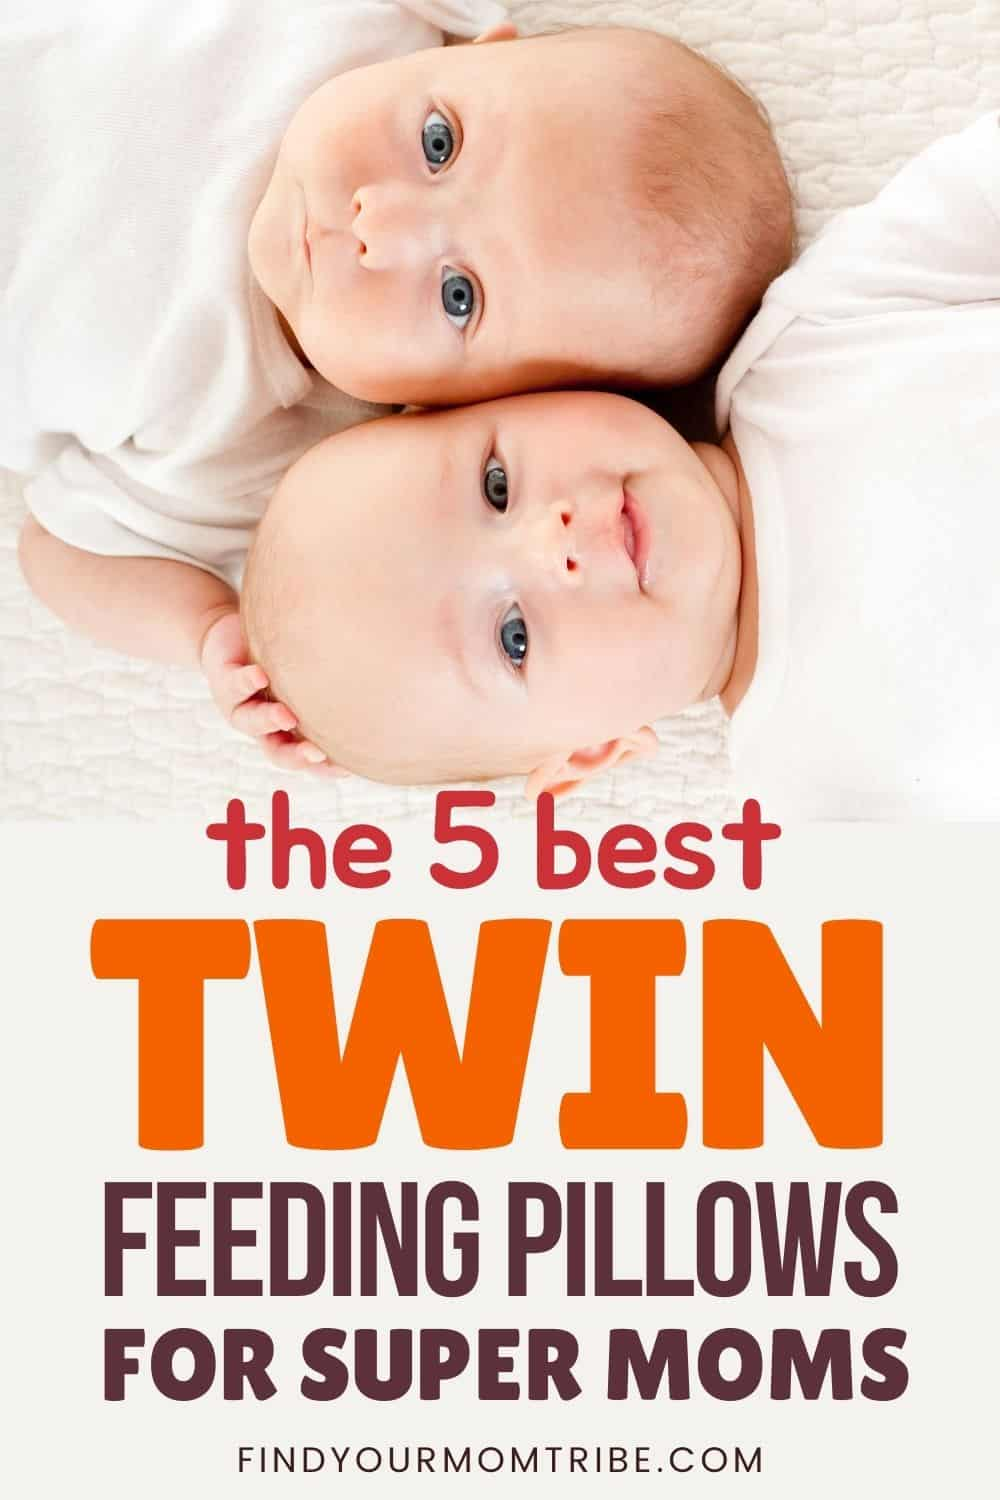 The 5 Best Twin Feeding Pillows For Super Moms